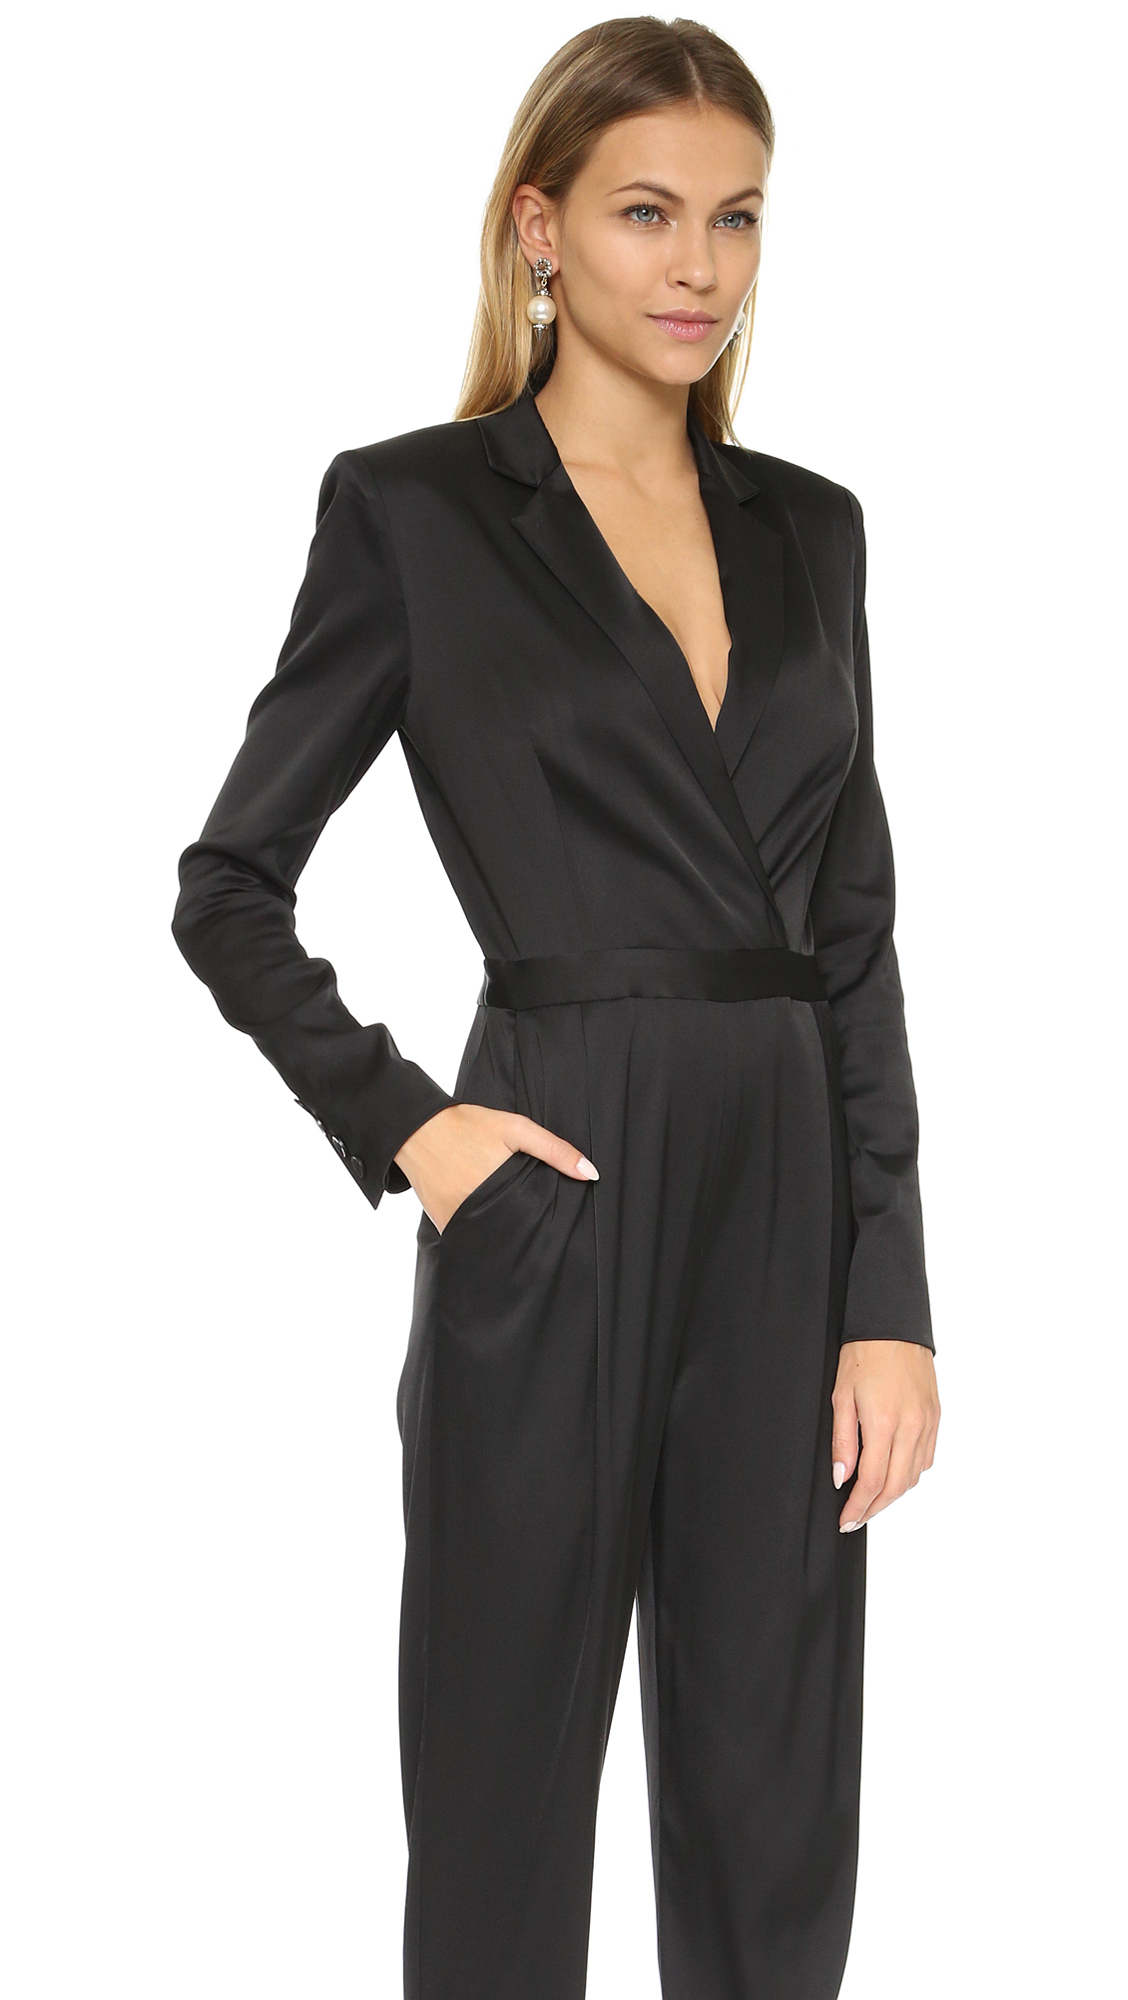 Botega Veneta black tuxedo style jumpsuit size 40 lightweight wool EUC! SEE MORE DETAILS SEE SIMILAR PRODUCTS. Nwt Phillip Lim Tuxedo $ CLOSE X $ 65 From Ebay NWT Phillip Lim Tuxedo Black Jumpsuit. SEE MORE DETAILS SEE SIMILAR PRODUCTS. $ Nwt A.L.C Beni Tuxedo.